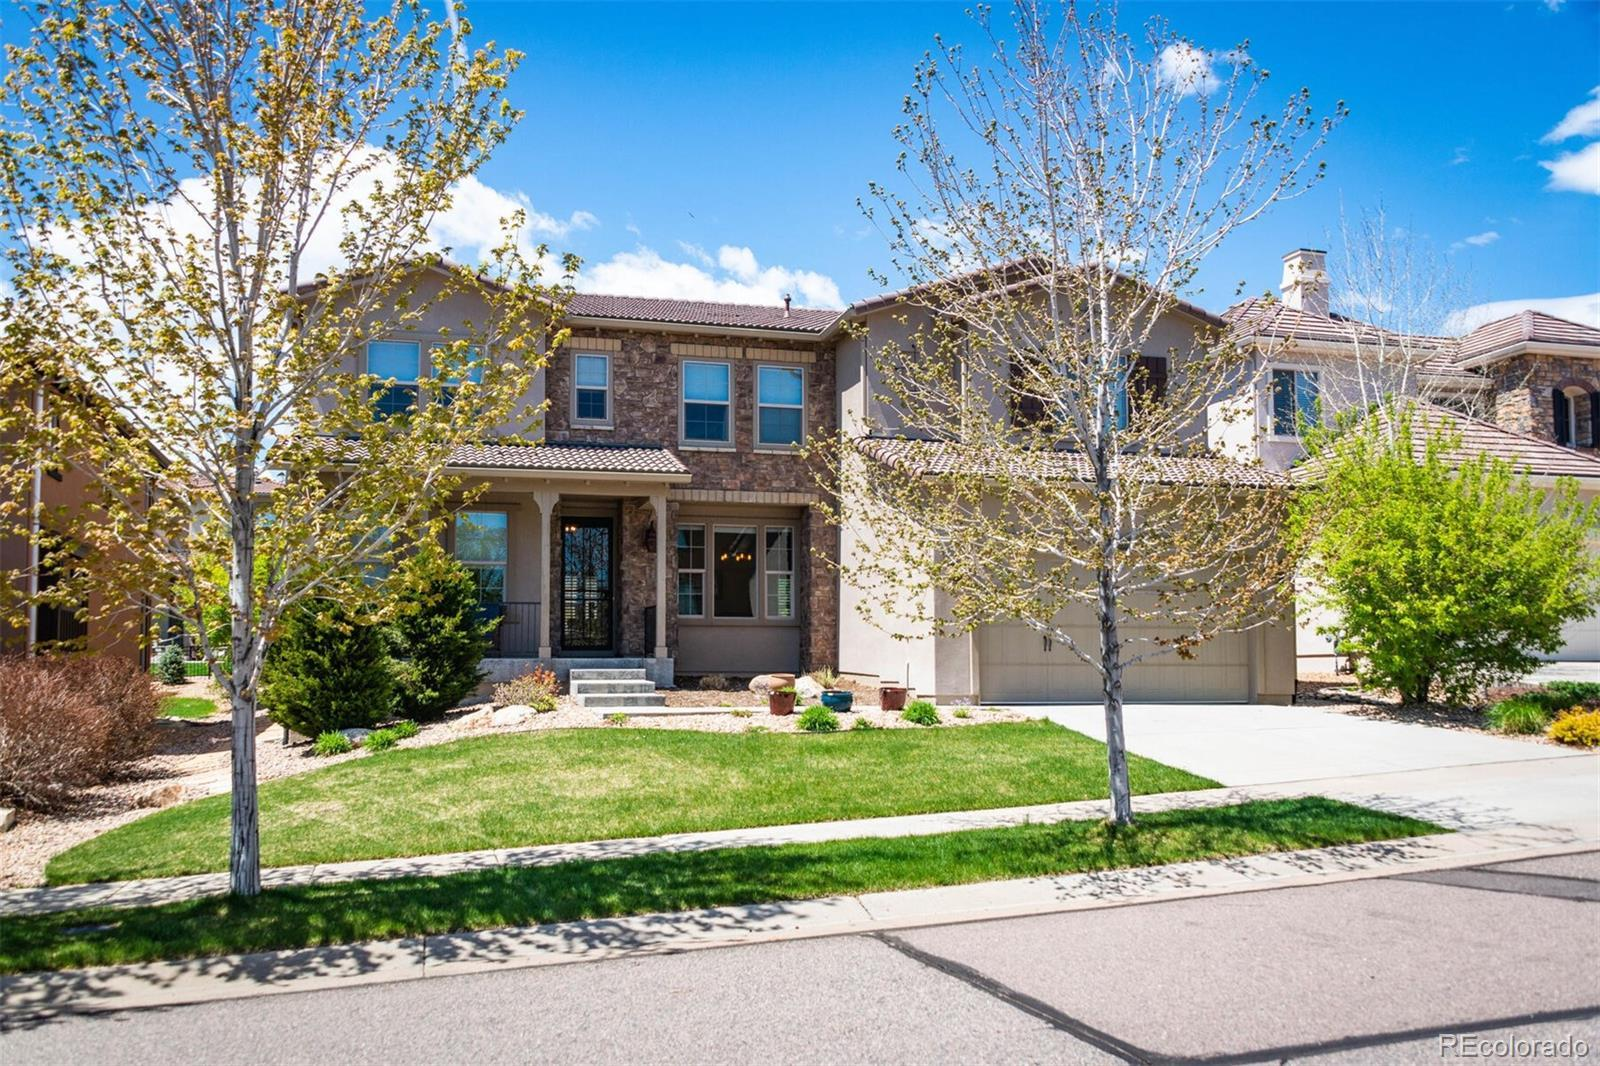 2255 S Isabell Street, Lakewood, CO 80228 - #: 4420123